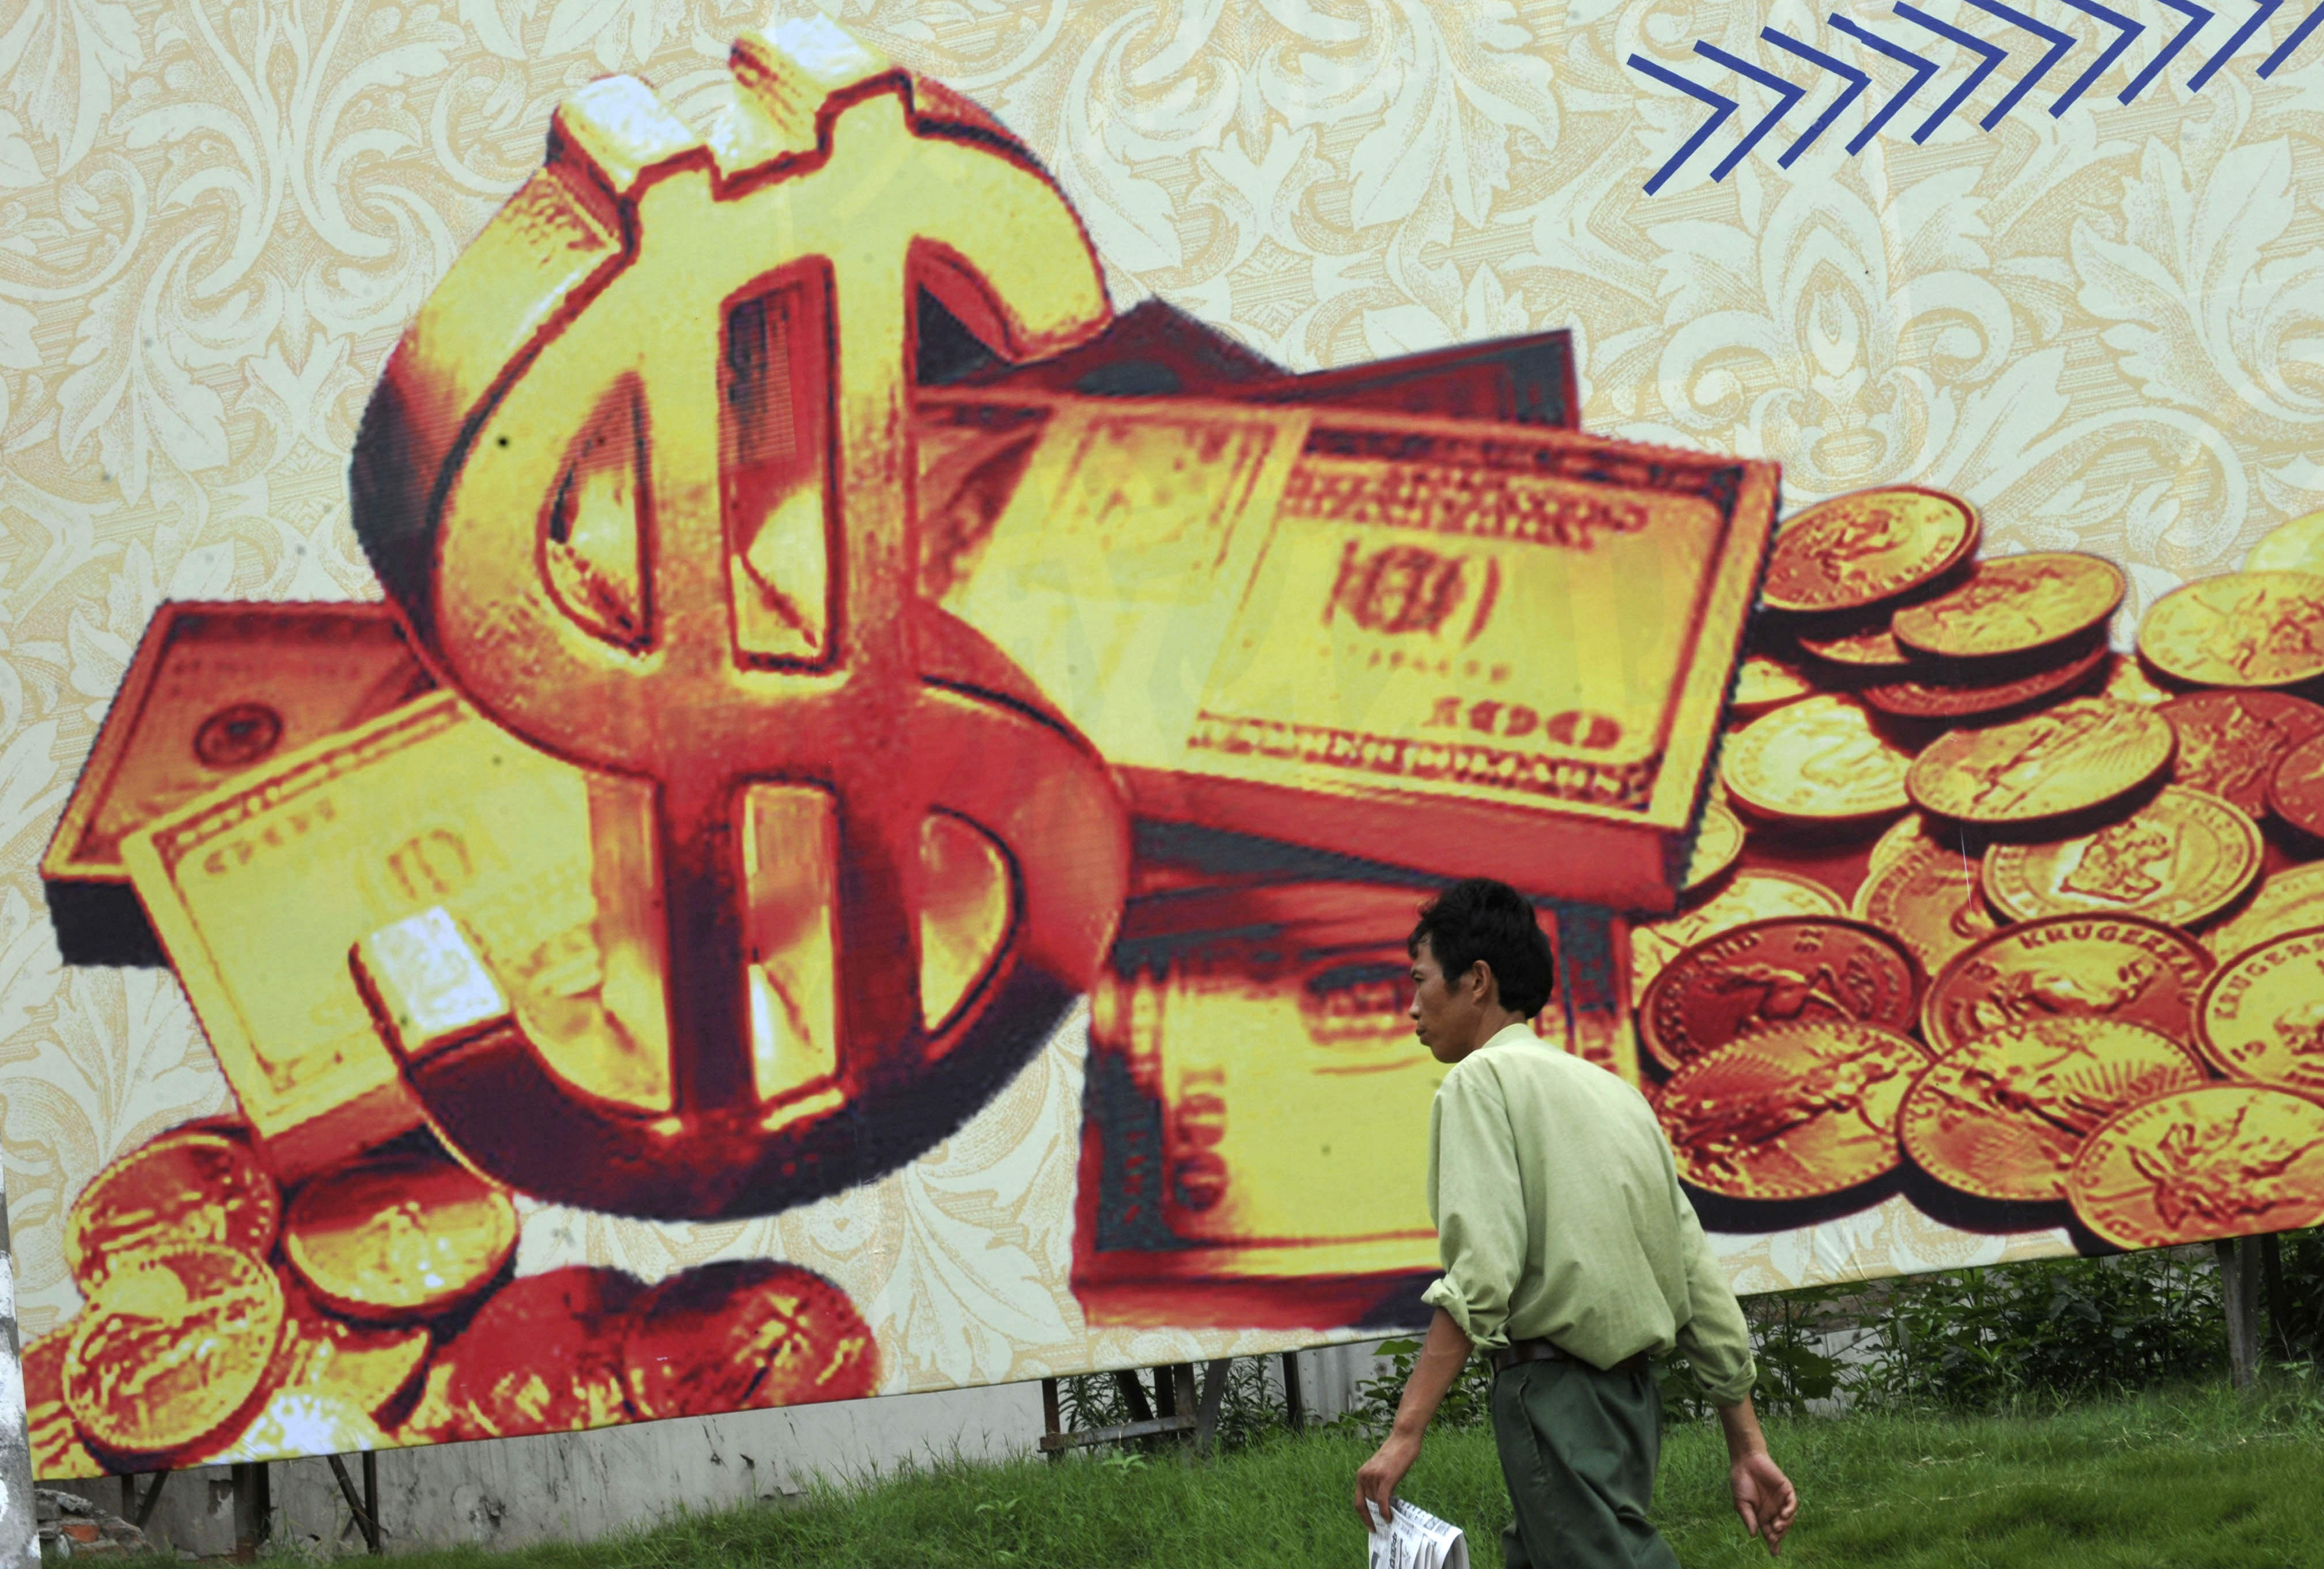 A man walks past a billboard featuring U.S. dollar notes on a street in Hefei, Anhui province July 8, 2010. China made clear again on Thursday that it has every intention of keeping its currency on a short leash with conditions not ripe, in its view, for the large appreciation sought by the United Sates. REUTERS/Stringer (CHINA - Tags: BUSINESS) CHINA OUT. NO COMMERCIAL OR EDITORIAL SALES IN CHINA - RTR2G7K0